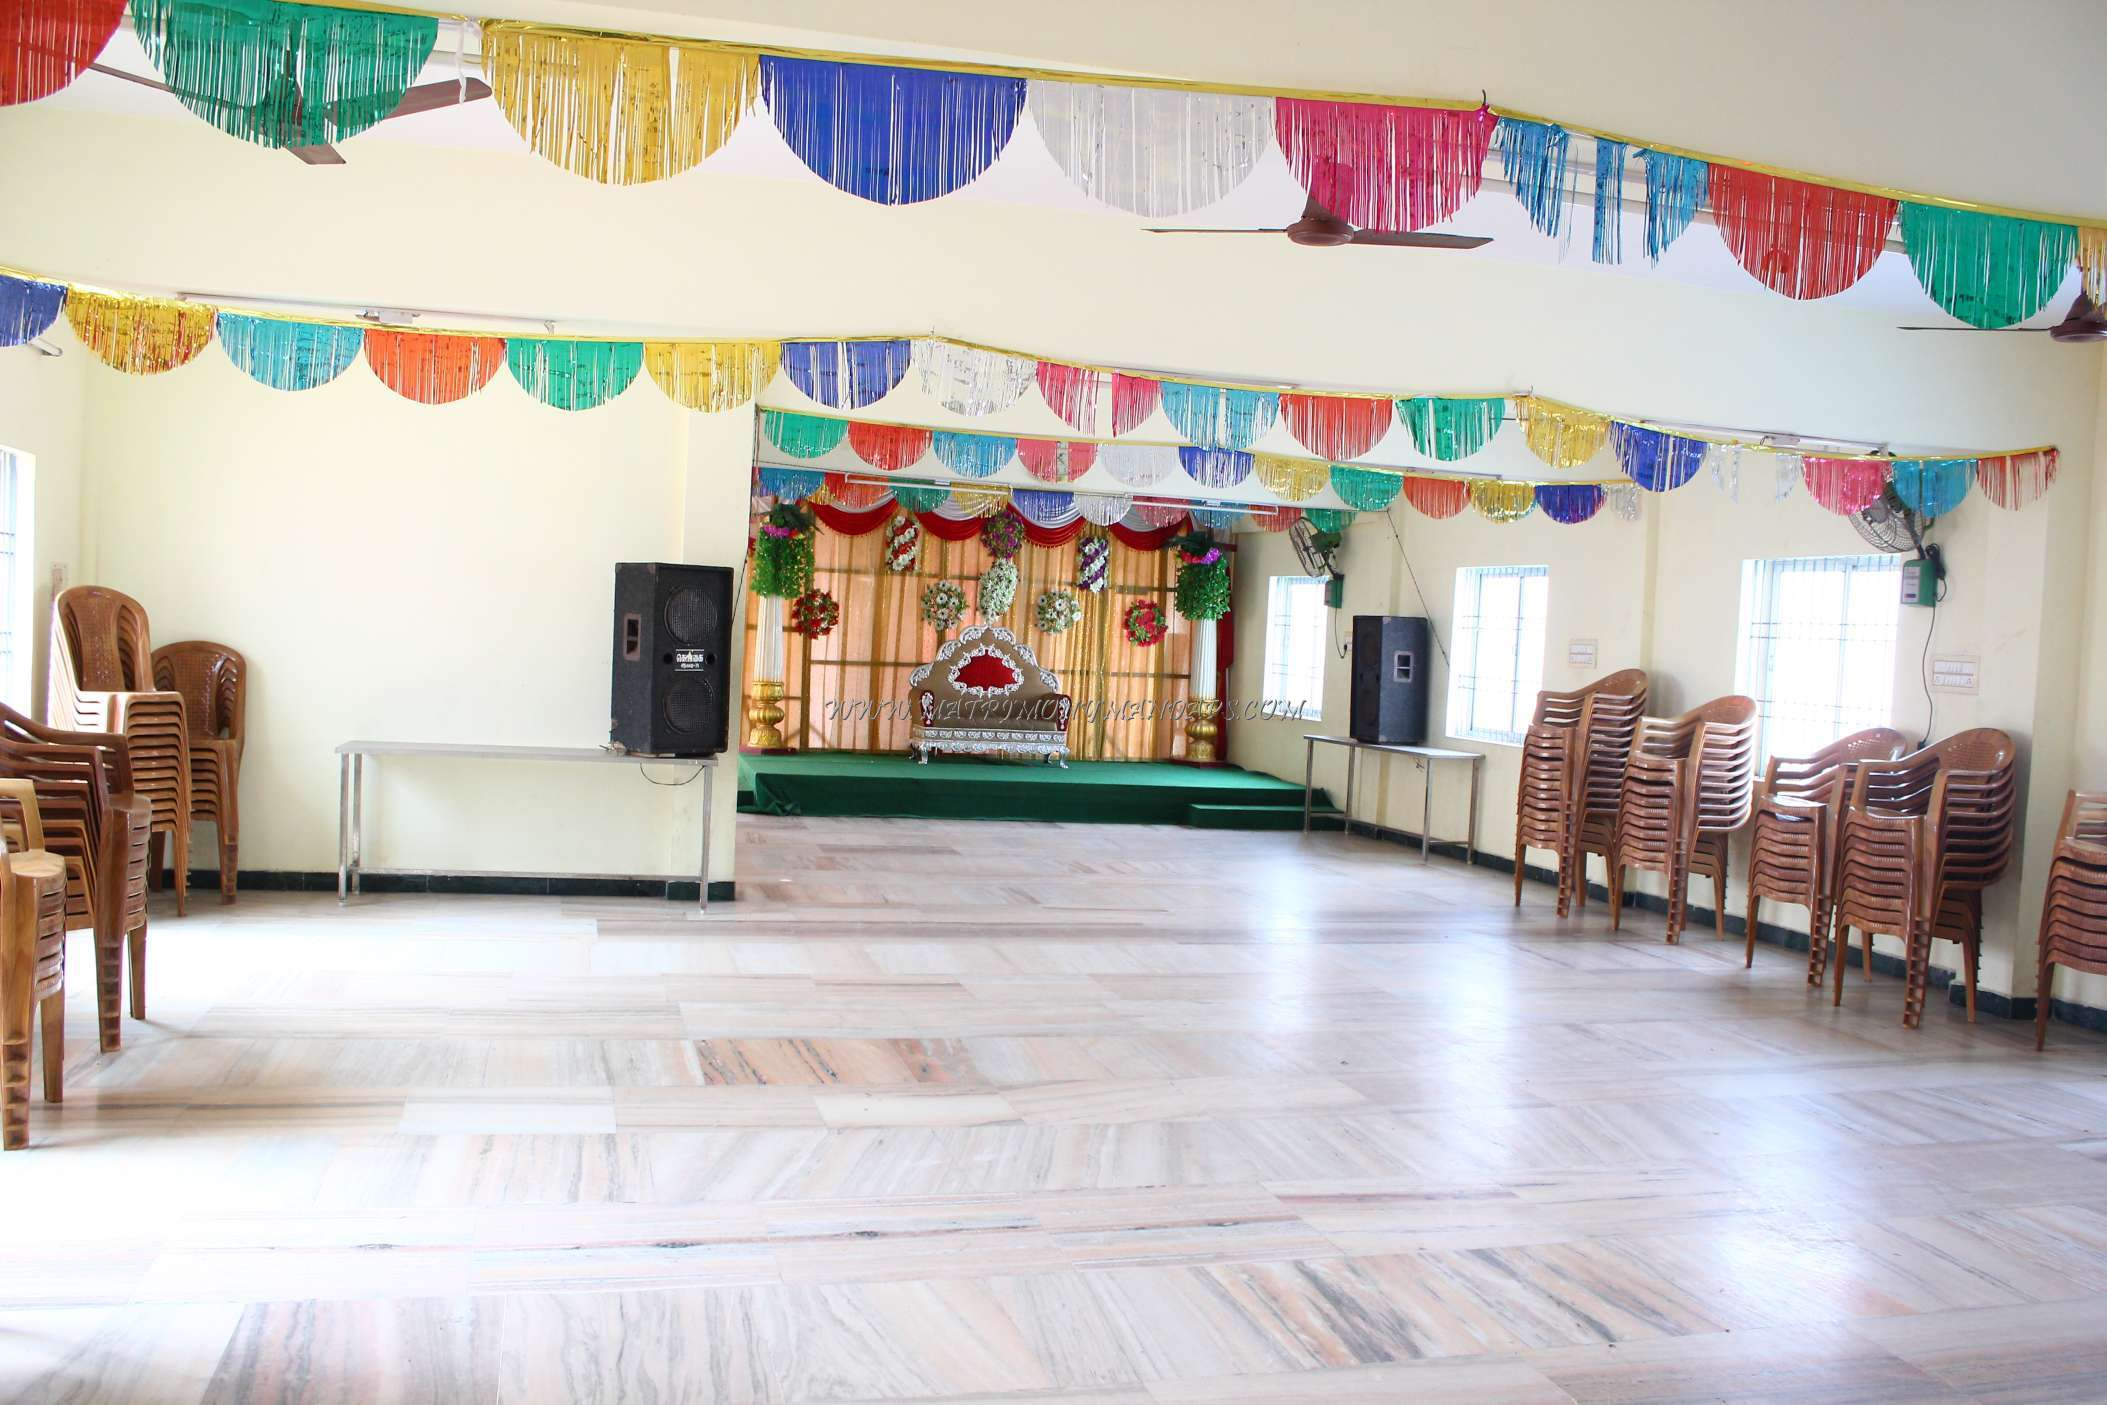 Find More Kalyana Mandapams in Avadi